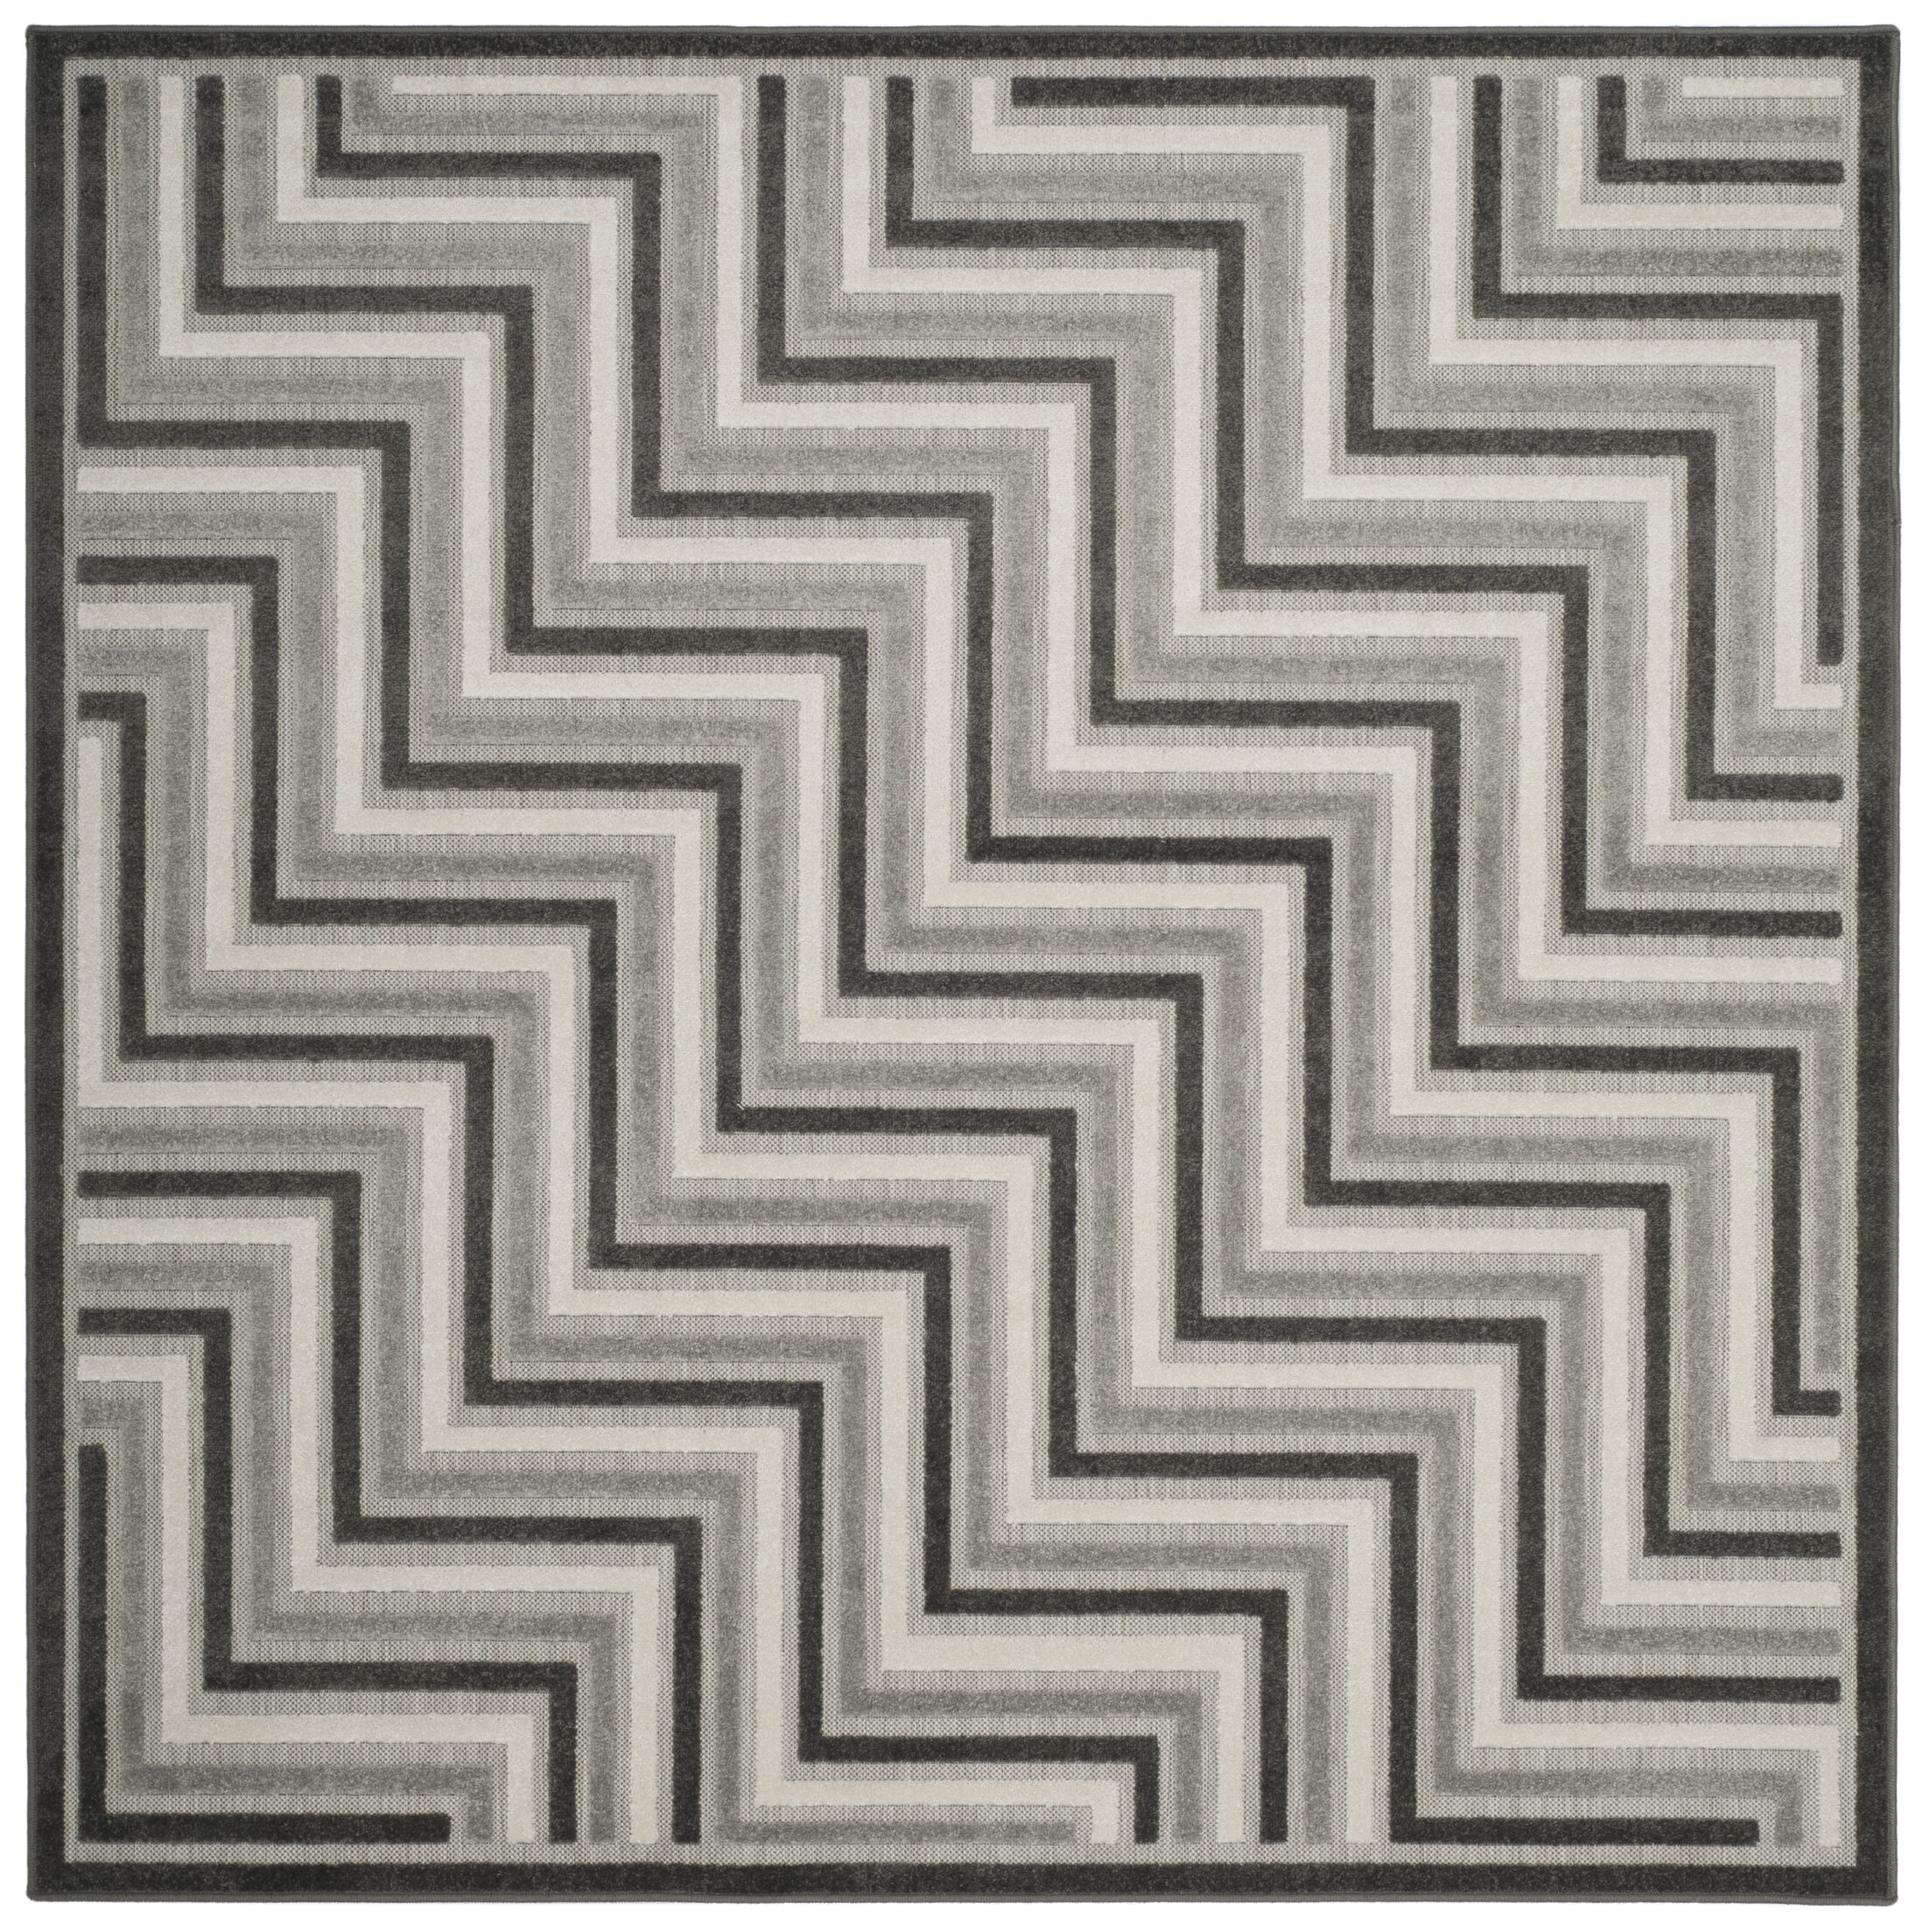 Holly Gray Outdoor Area Rug Rug Size: Square 6'7